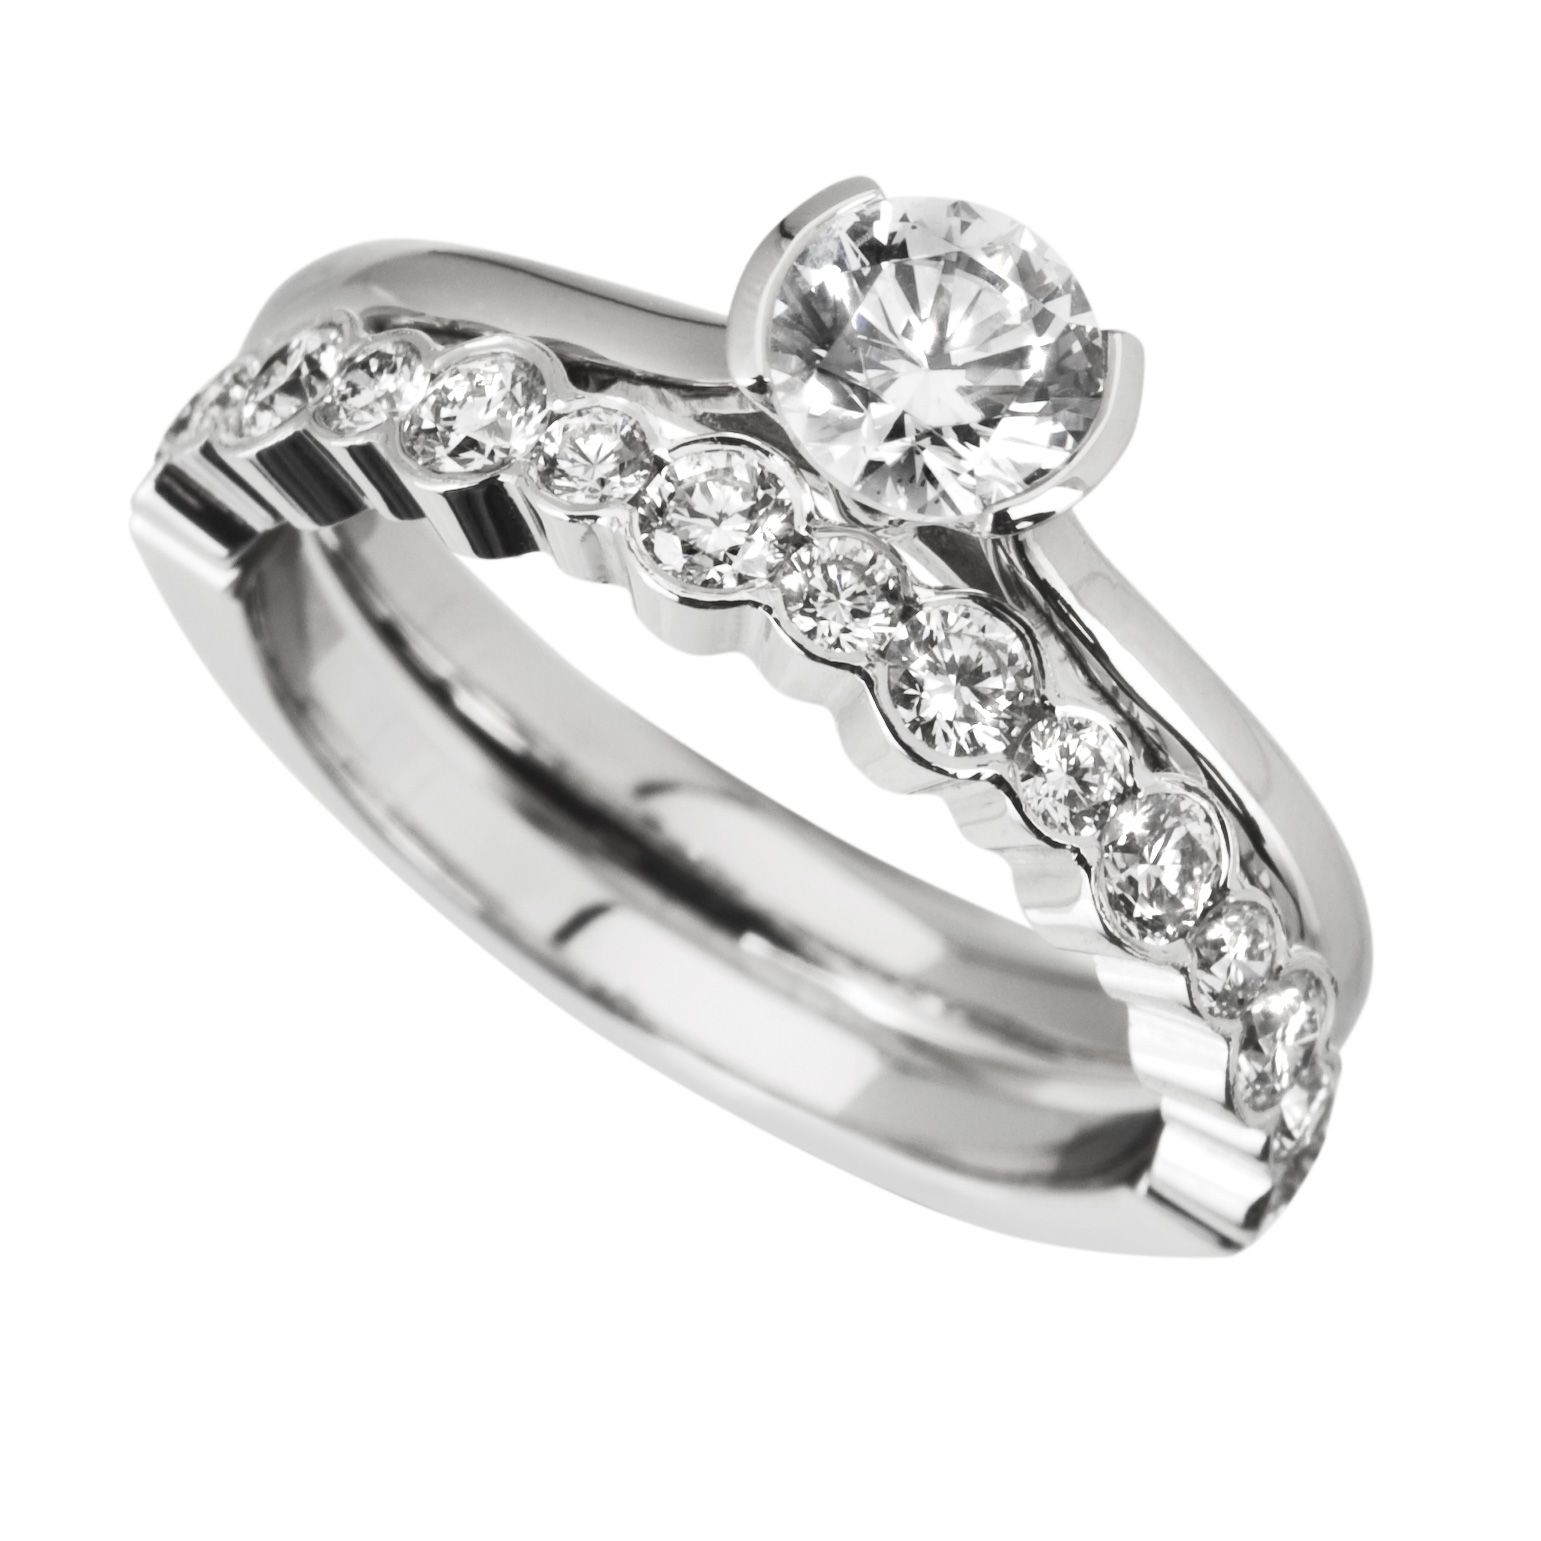 images of wedding rings sets rub over engagement ring with matching diamond - Engagement And Wedding Ring Set